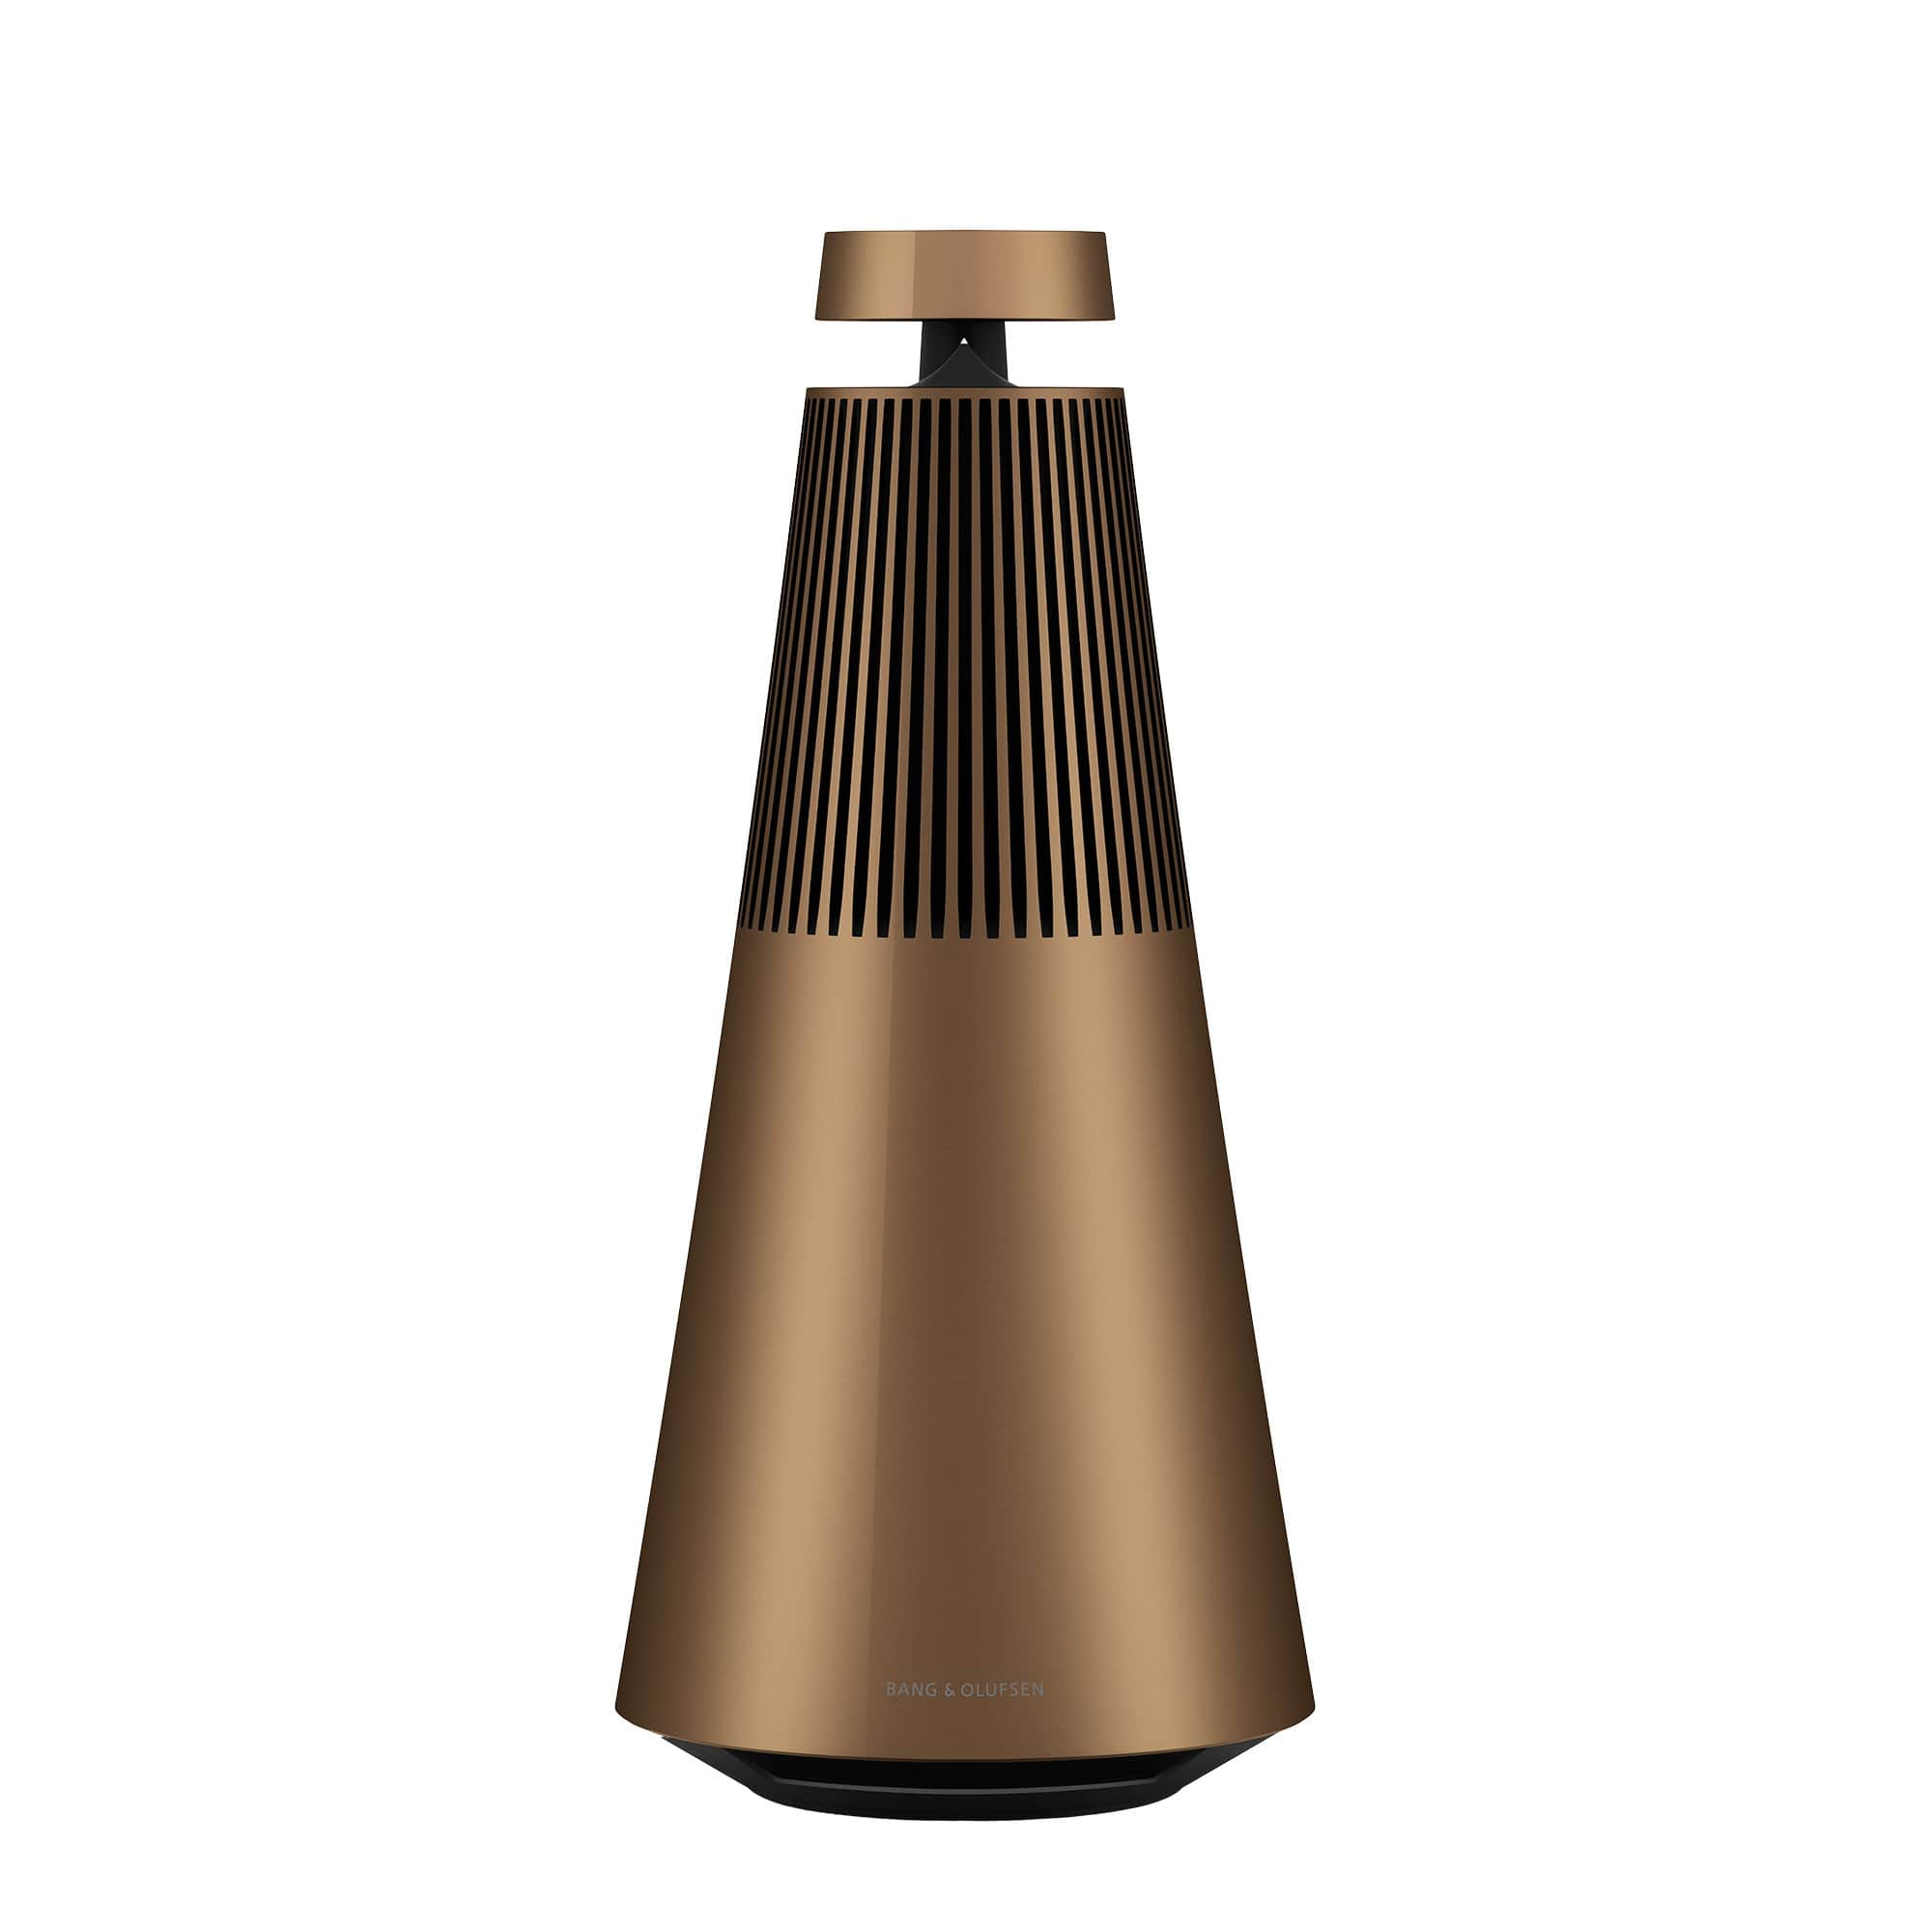 Bronze Beosound 2 Wireless Multiroom Speaker with Voice Assist